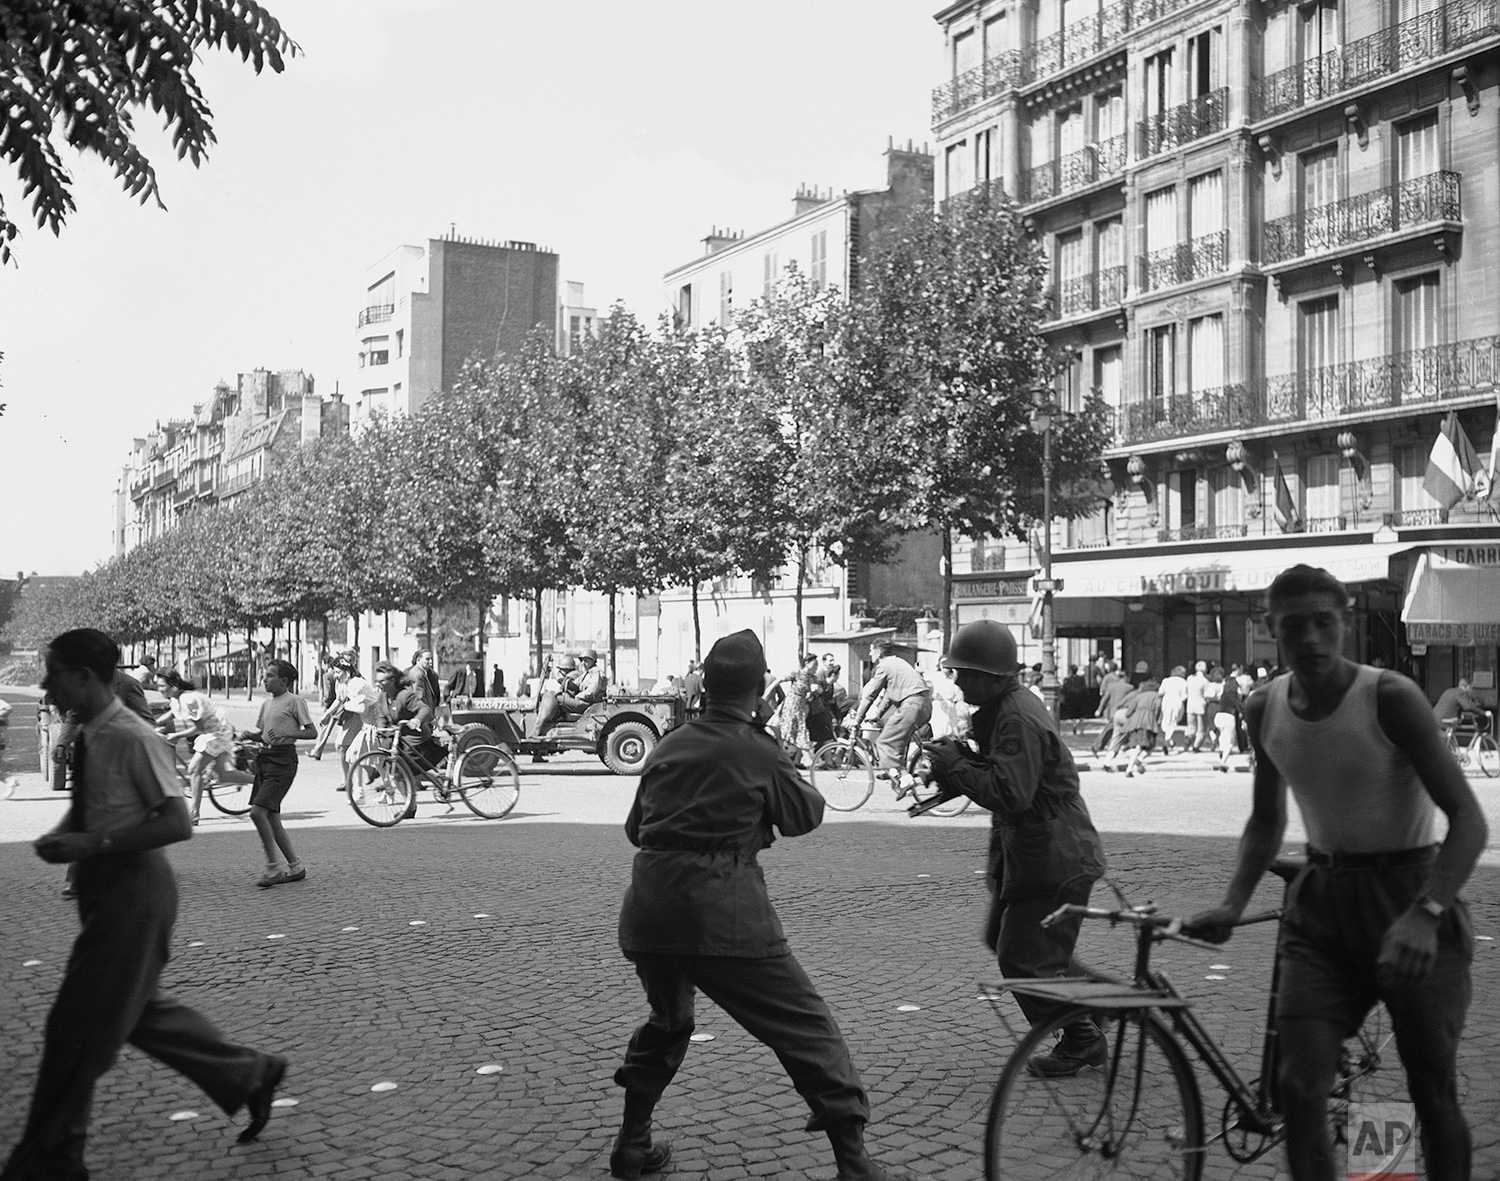 Crowds in a street run for shelter to get out of the line of German sniper fire in Paris on August 29, 1944. In foreground are two war photographers shooting this dramatic scene. (AP Photo/Peter J. Carroll)